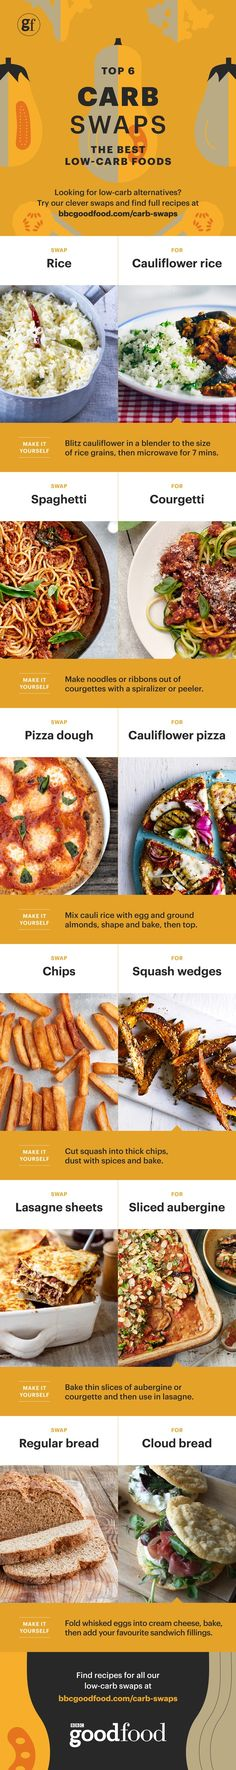 <p>If you're looking for lighter, low-carb alternatives to pasta, rice, chips and bread, then check out our list of simple food swaps using vegetables and eggs.</p>